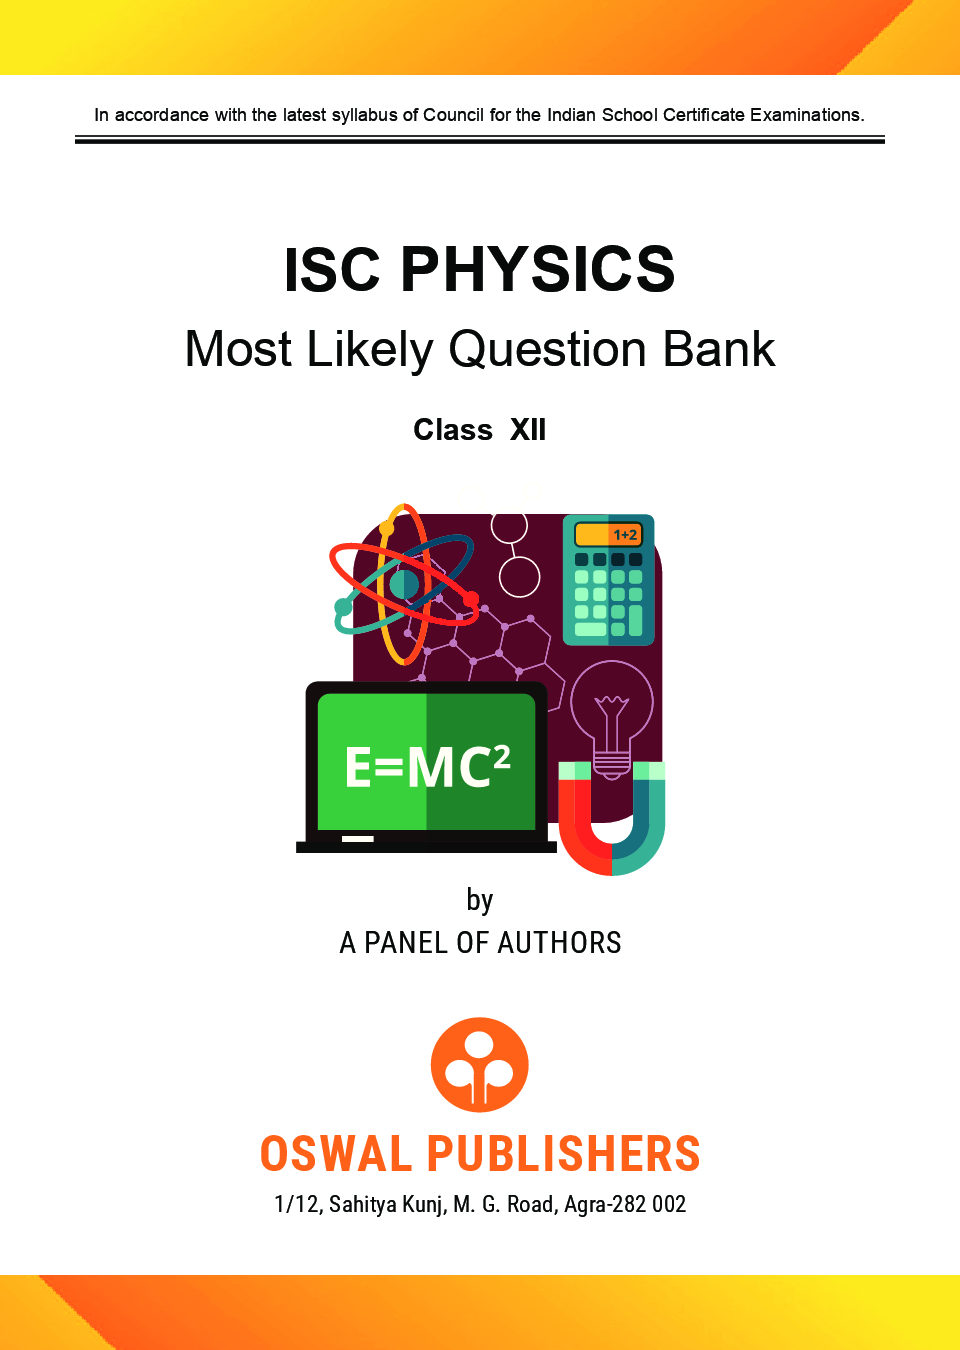 Oswal ISC Most Likely Question Bank Category & Chapterwise For Class XII Physics (For 2020 Exam) - Page 4